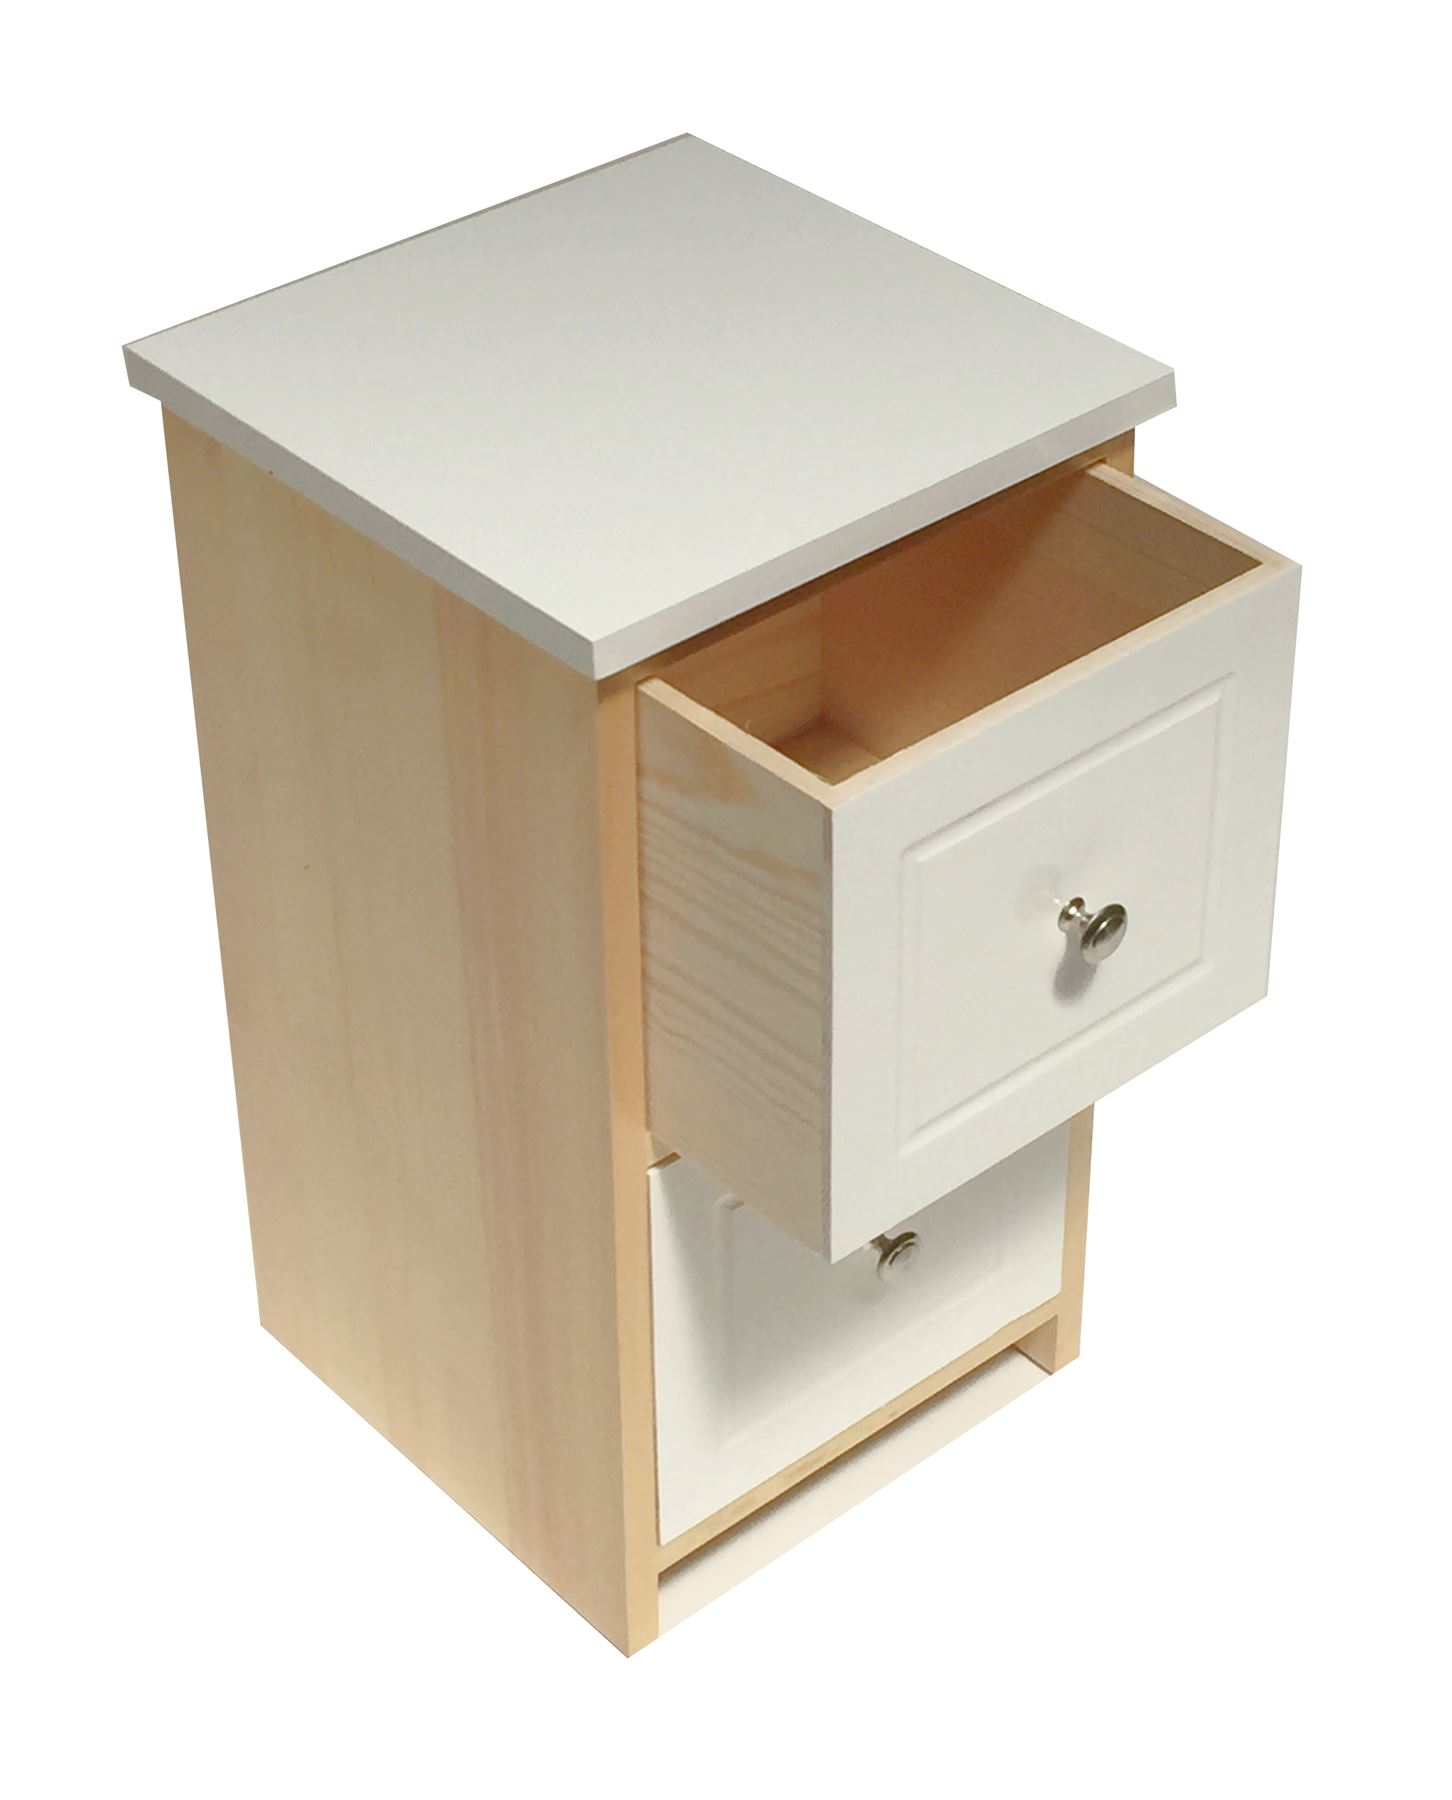 Assembled White Pine Chest of Drawers Hallway Bedside Table Storage Cabinet Unit